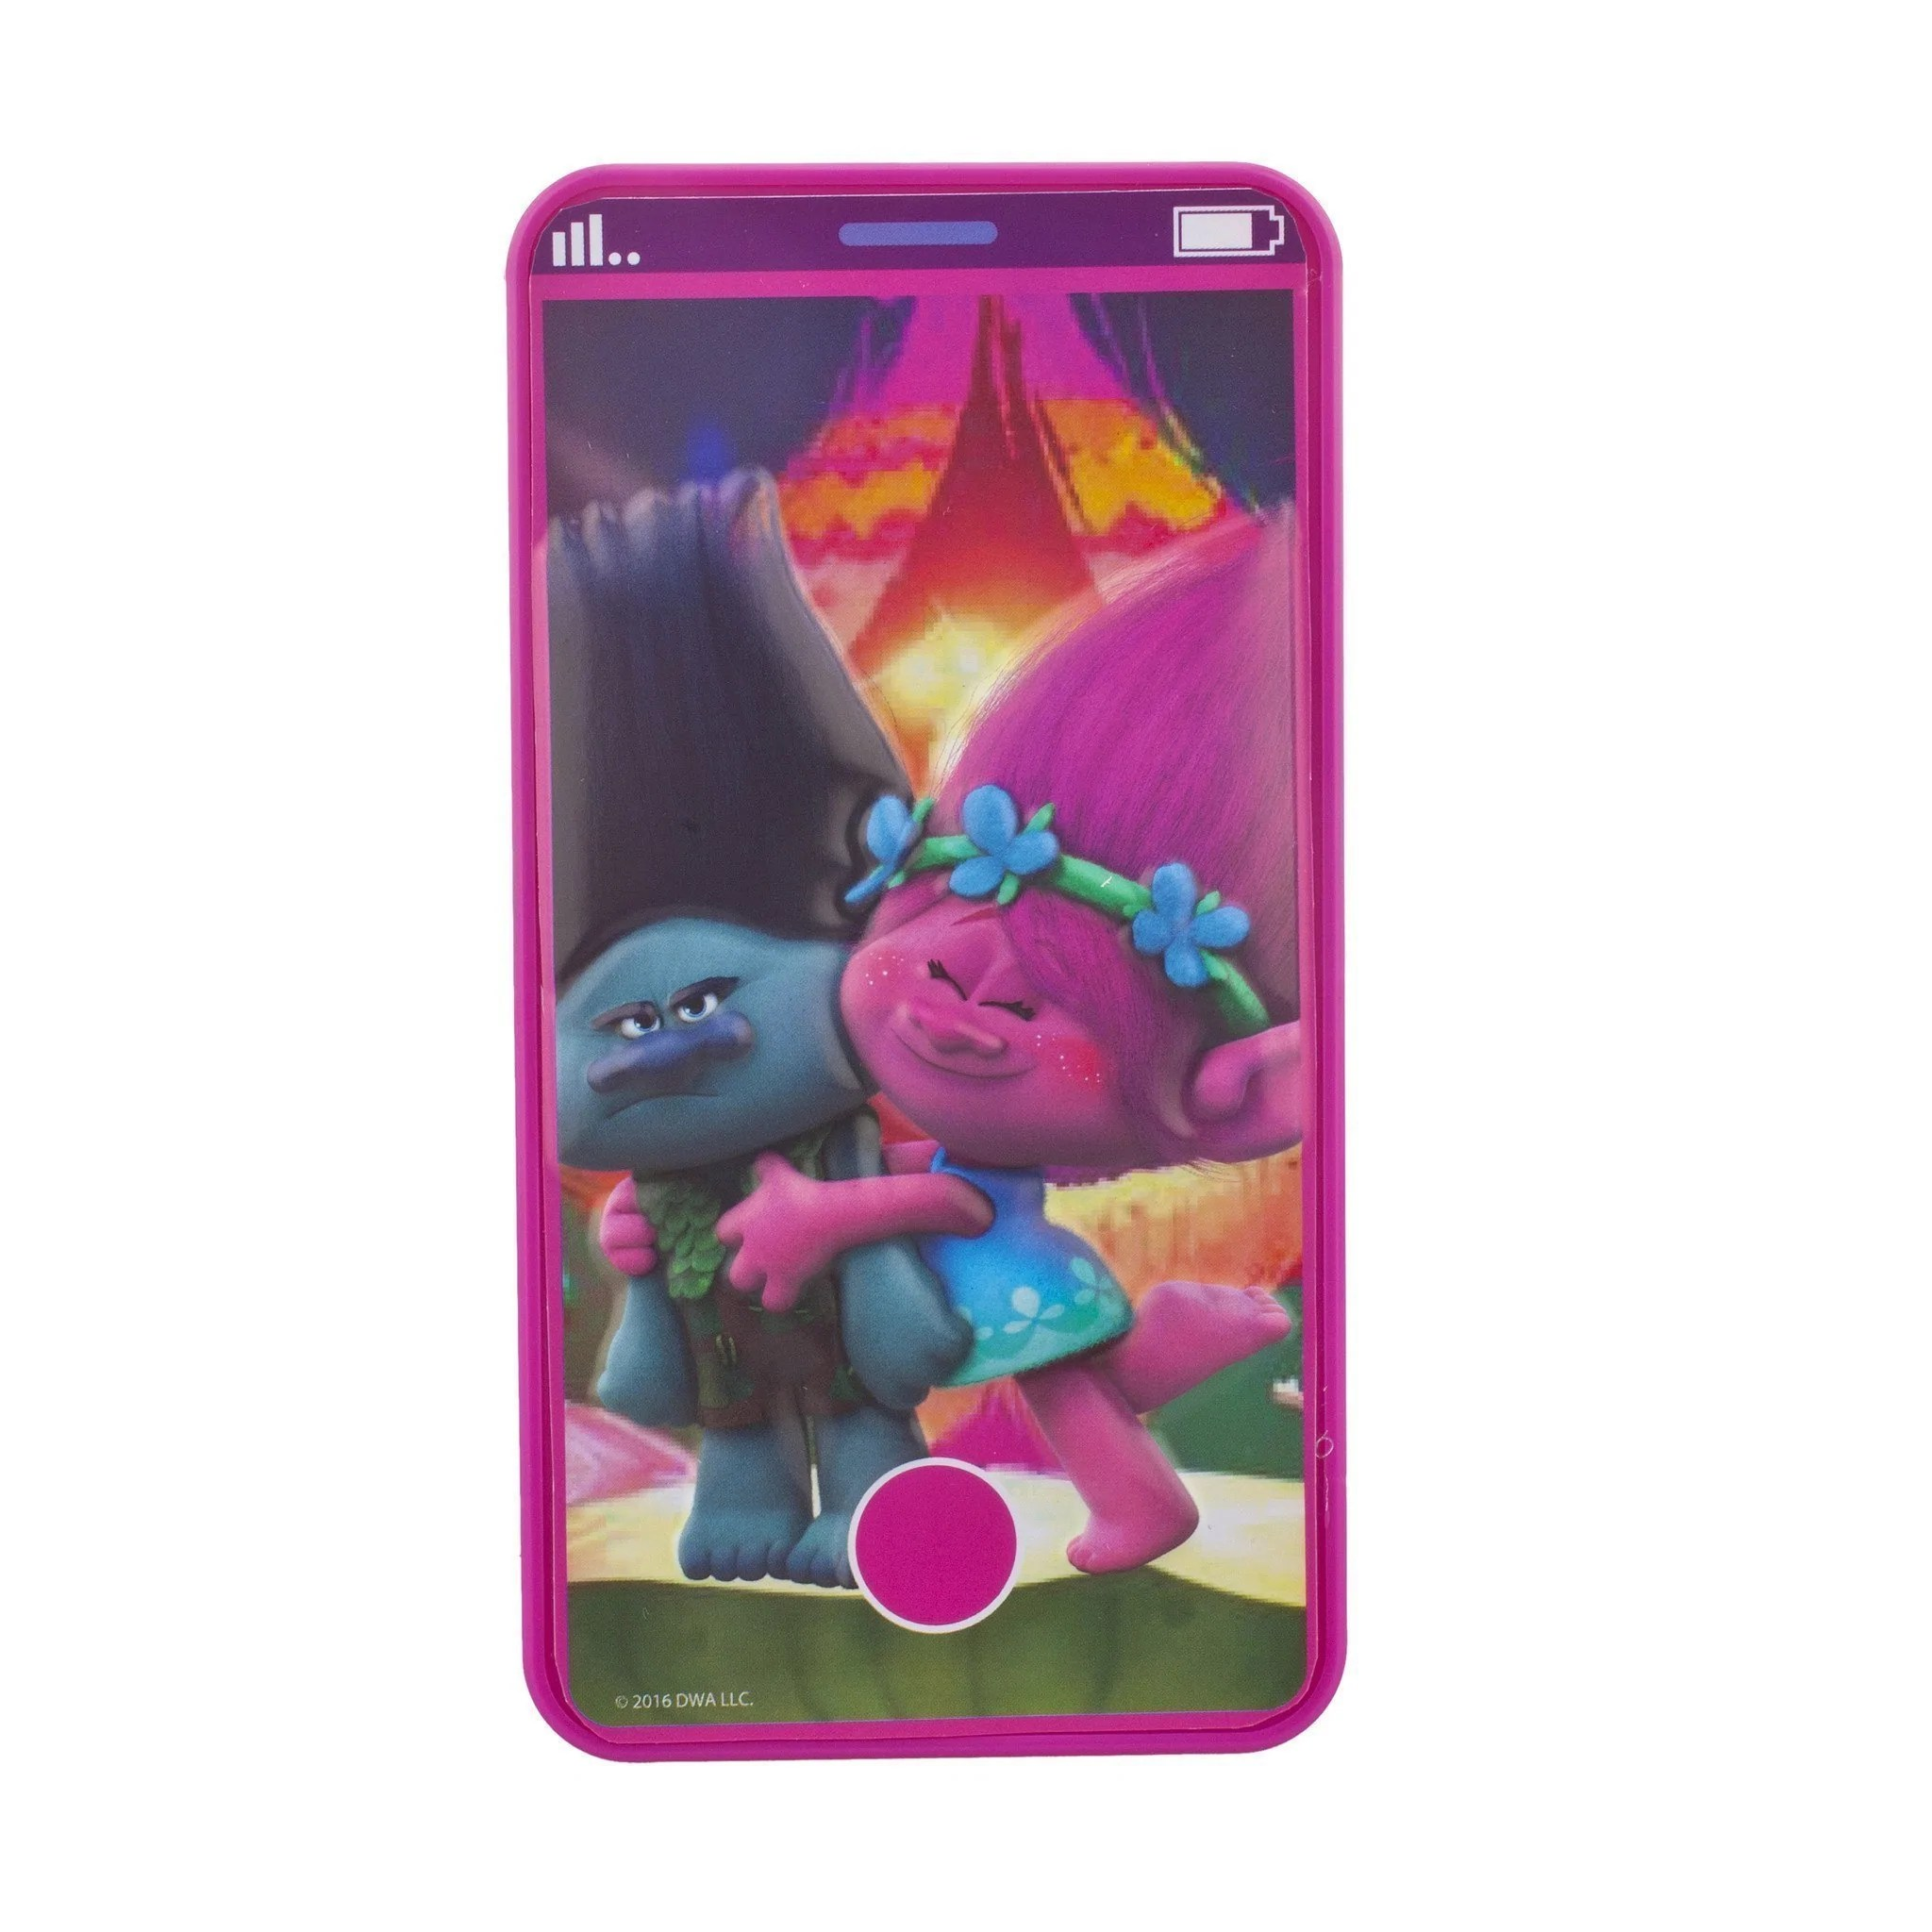 Trolls Cell Phone Lip Gloss Compact Townleygirl